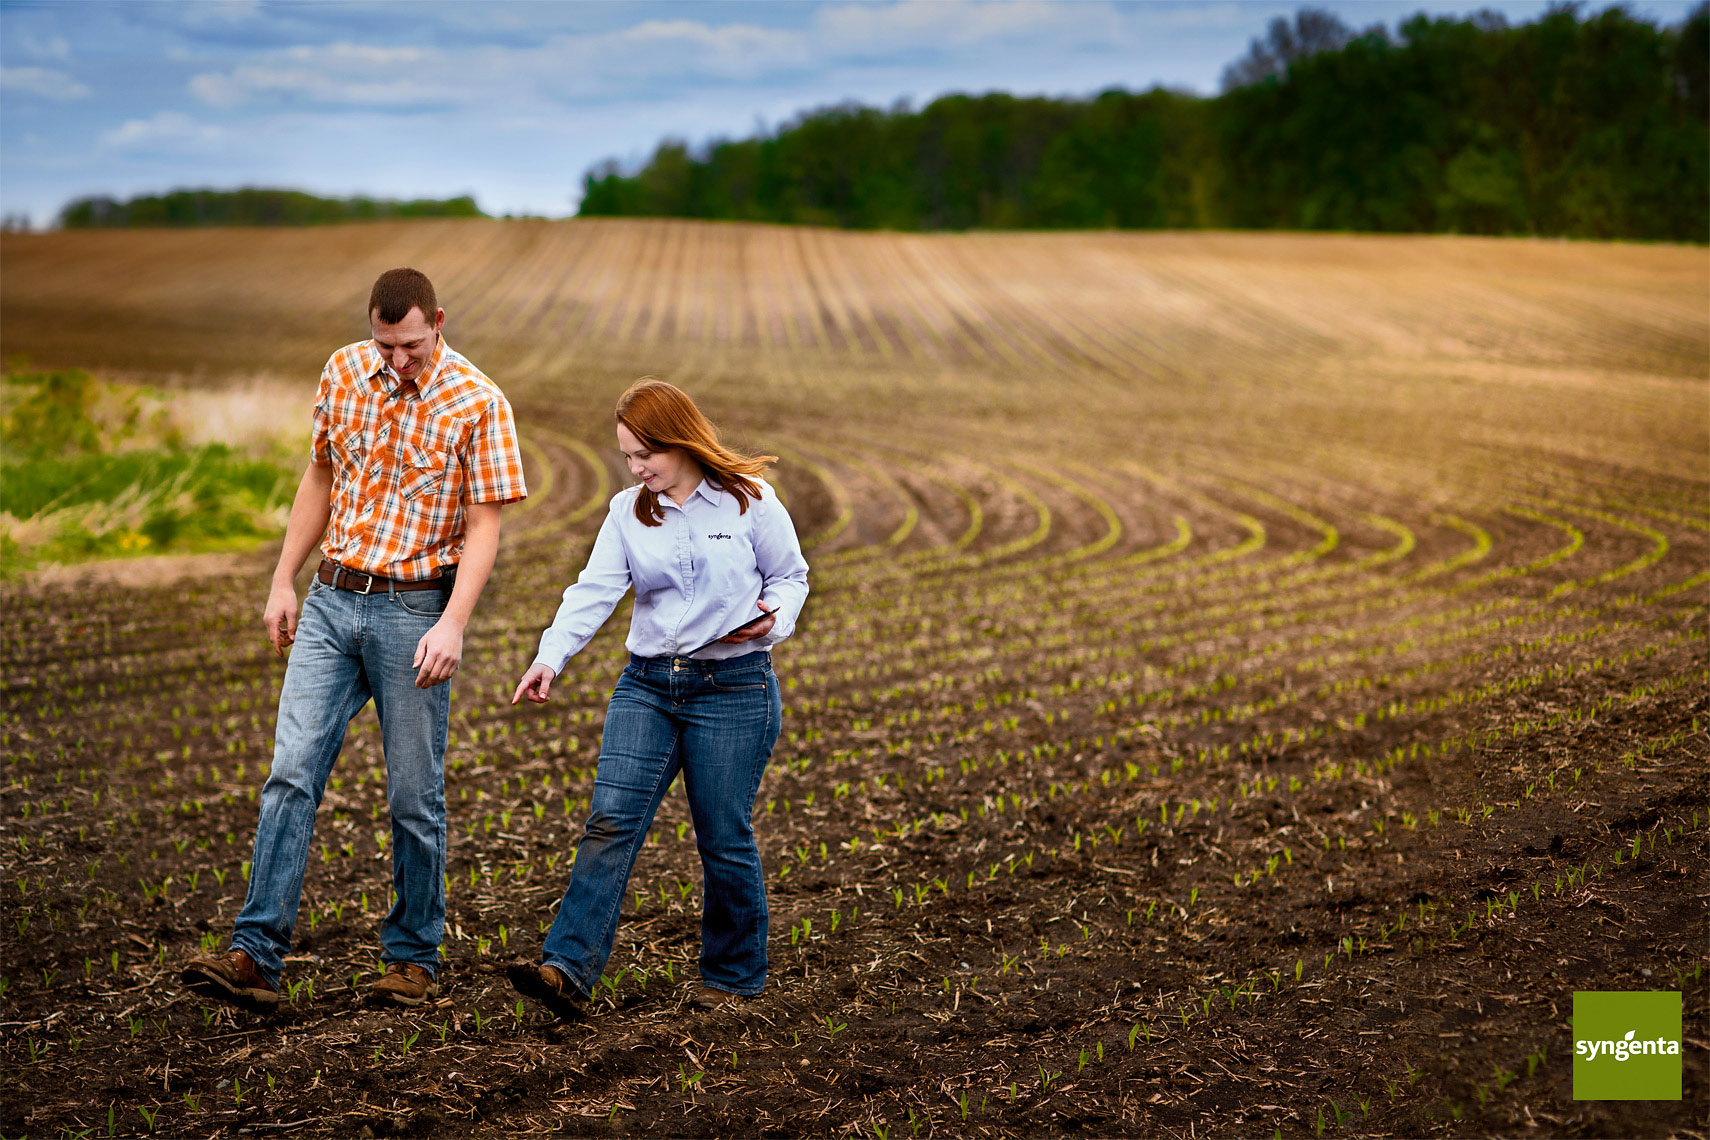 lifestyle-photo-of-syngenta-representative-overseeing-crops